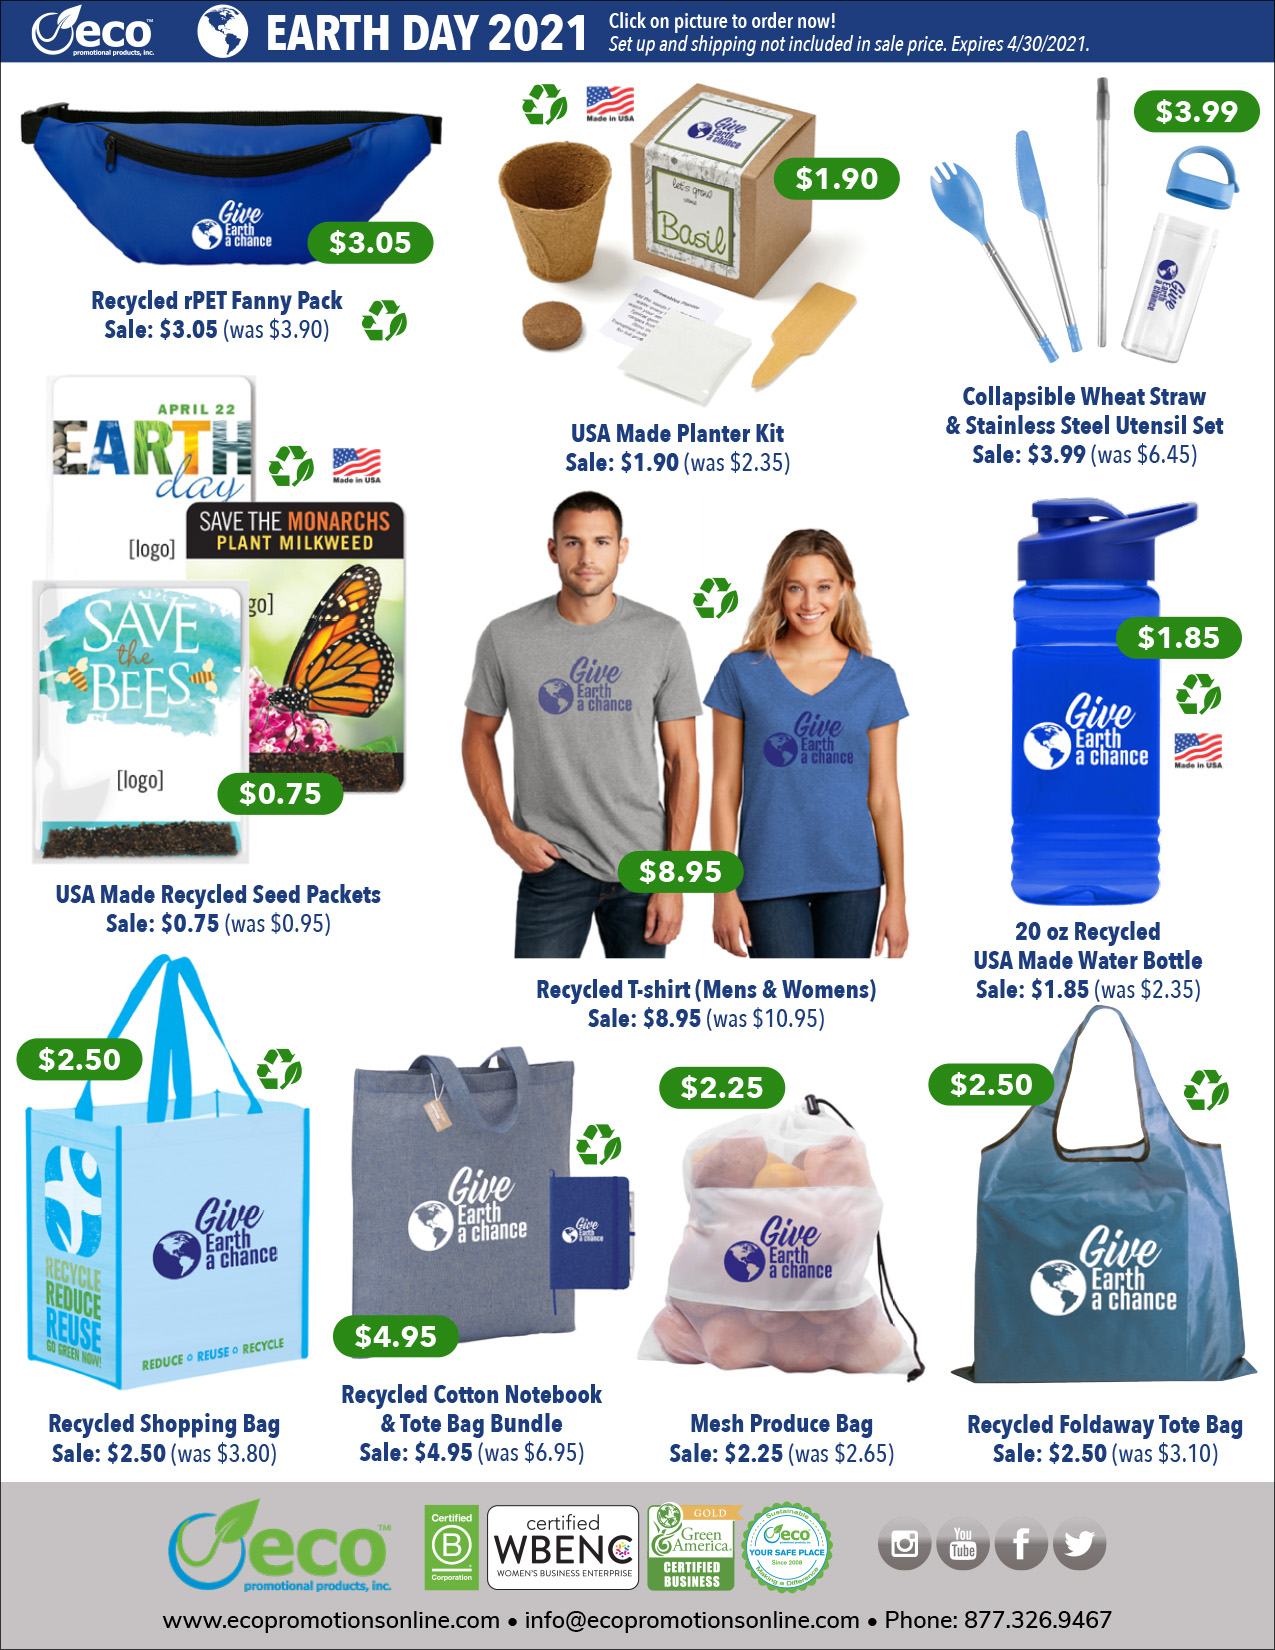 2021 Earth Day Specials | Eco Promotional Products ...